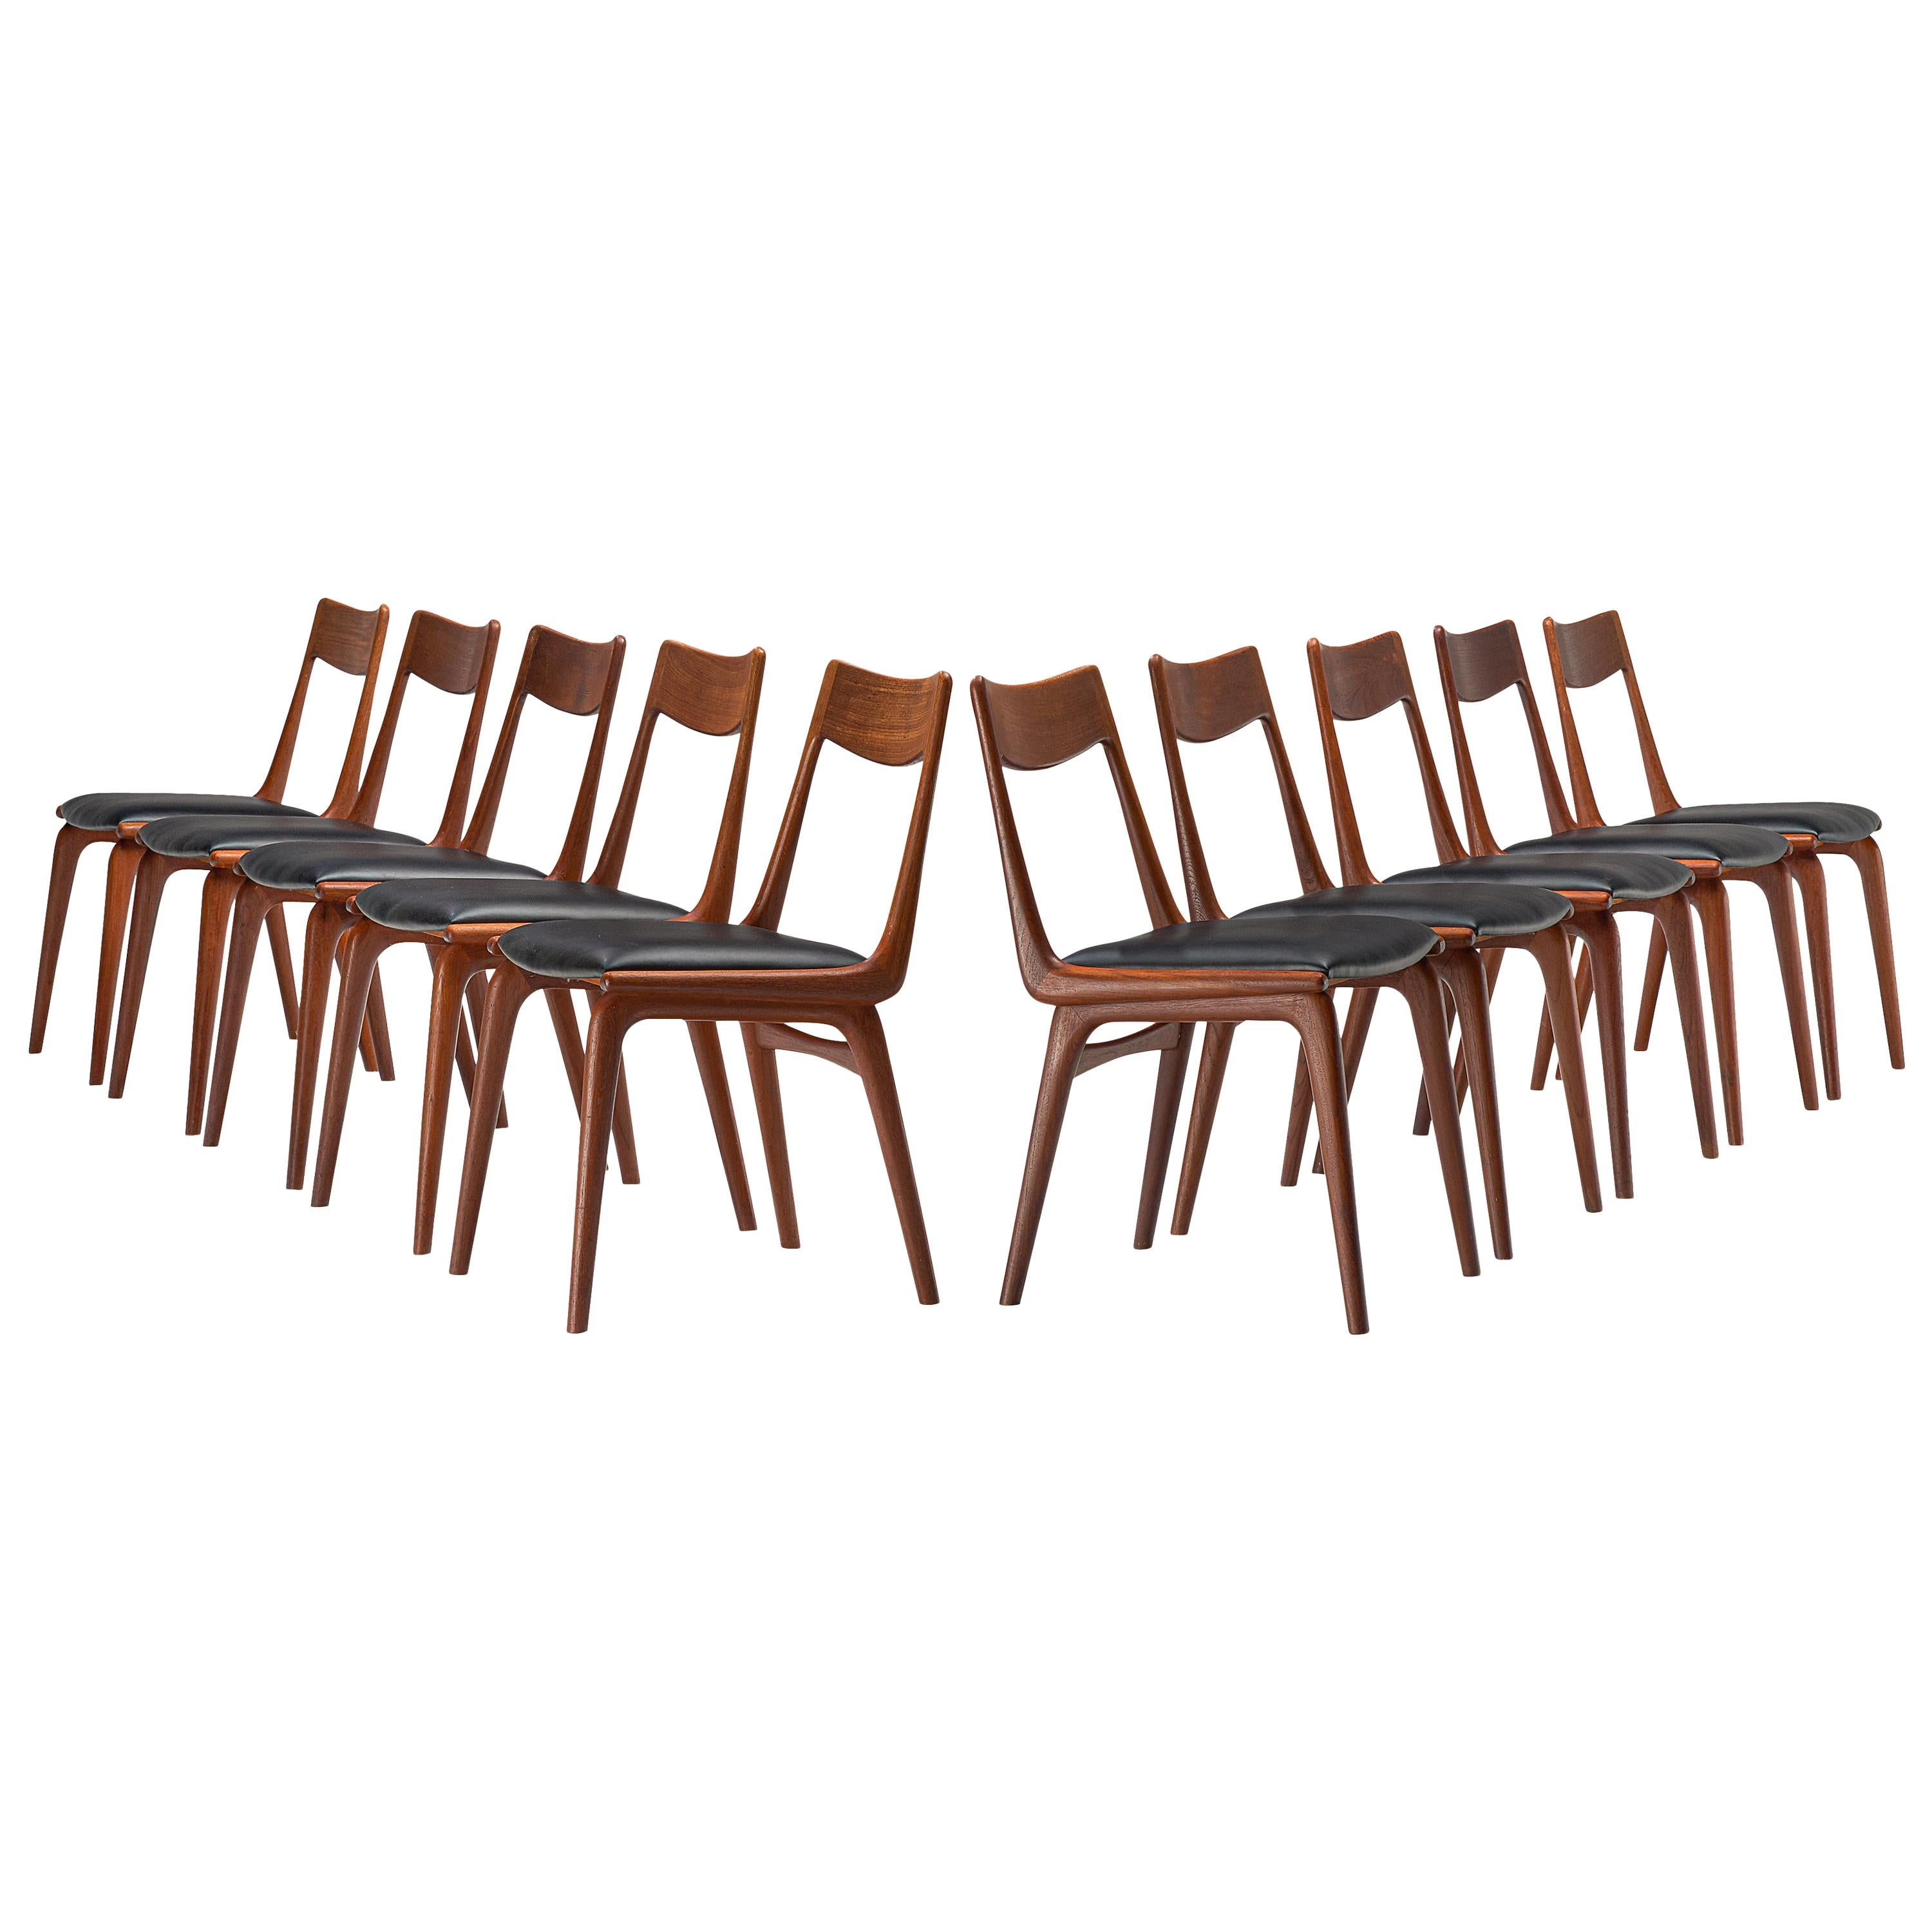 Alfred Christensen for Slagelse Møbelvaerk Set of 10 Dining Chairs in Teak